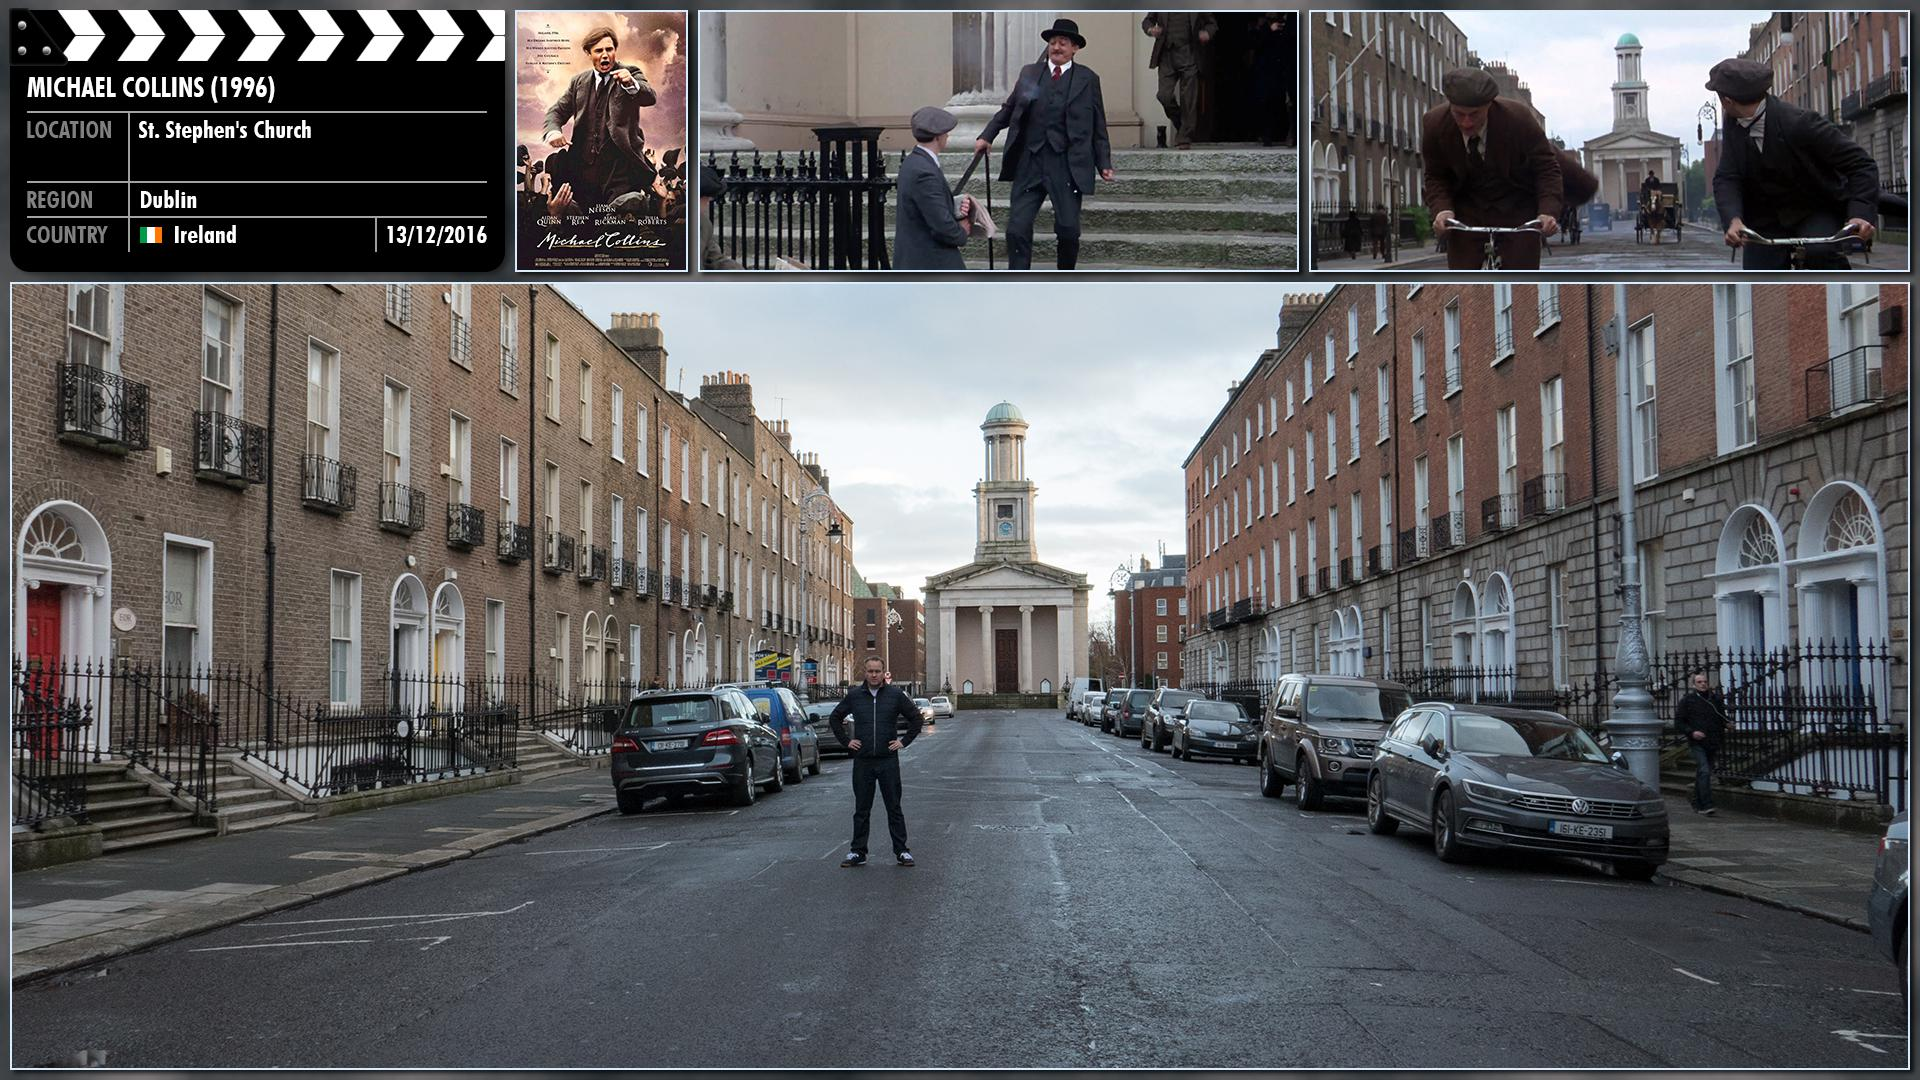 Filming location photo for Michael Collins (1996) 3 of 3